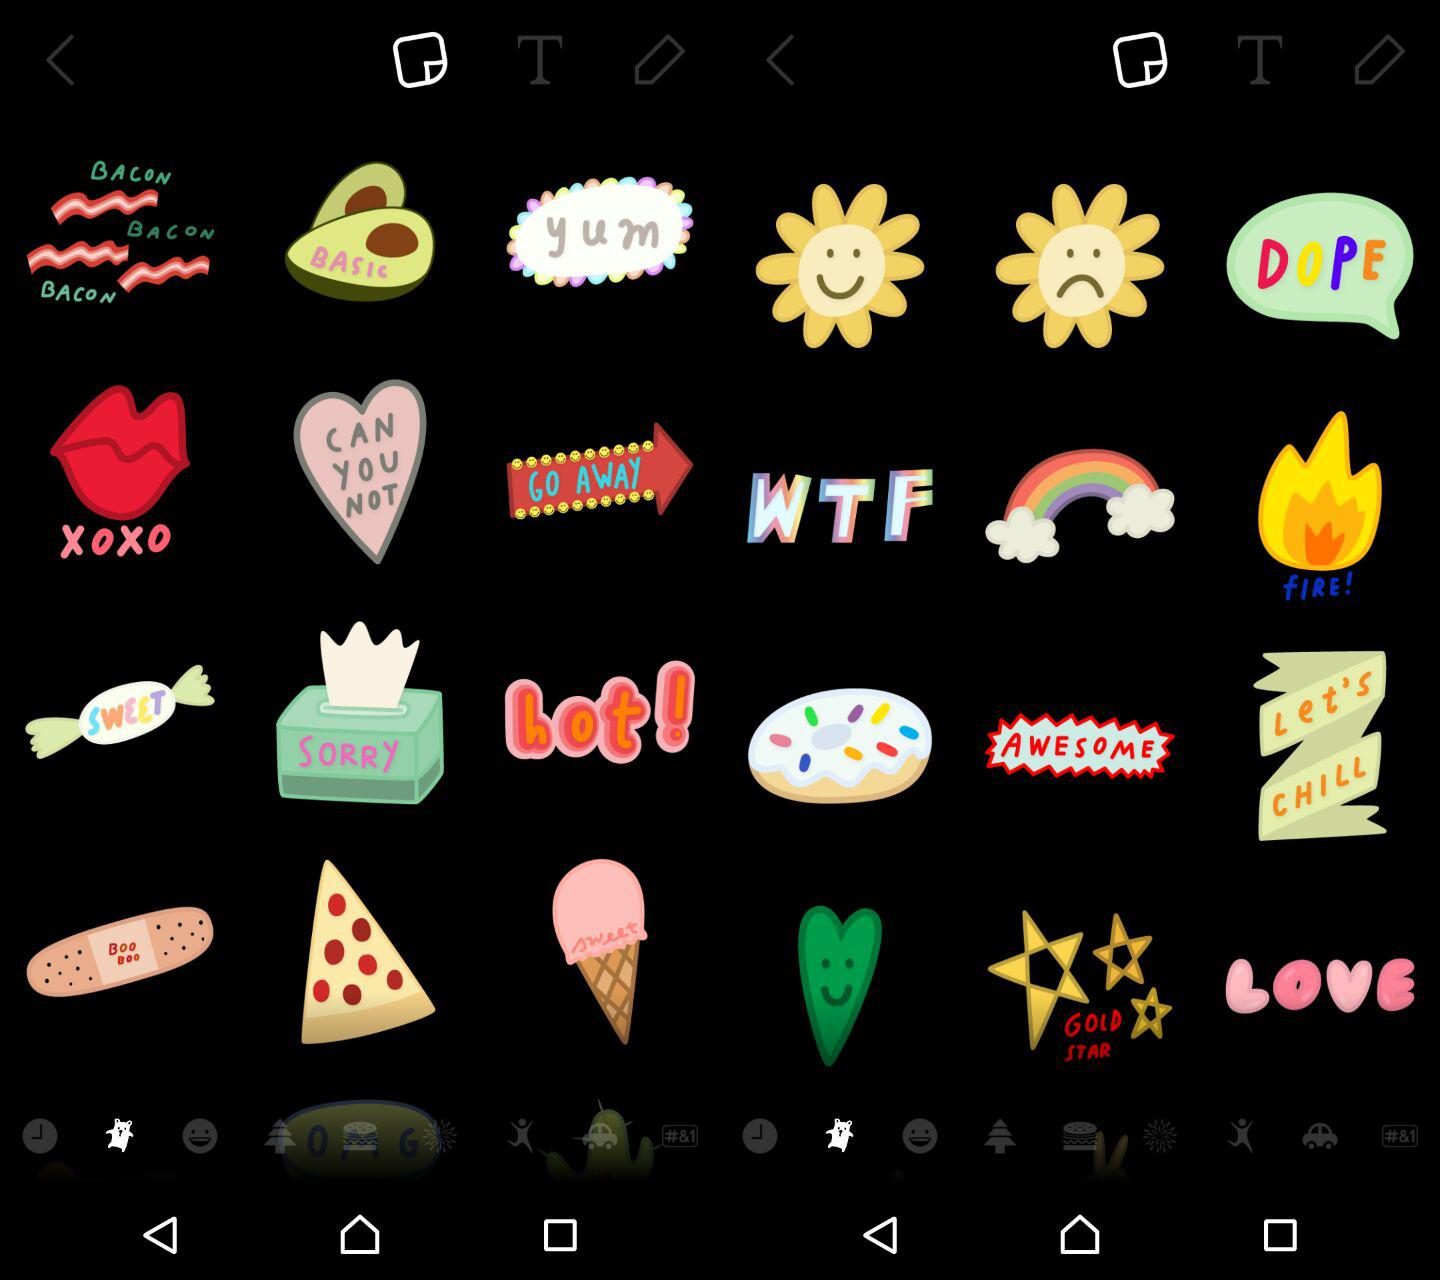 Snapchat adds a ton of stickers for you to add to your snaps.